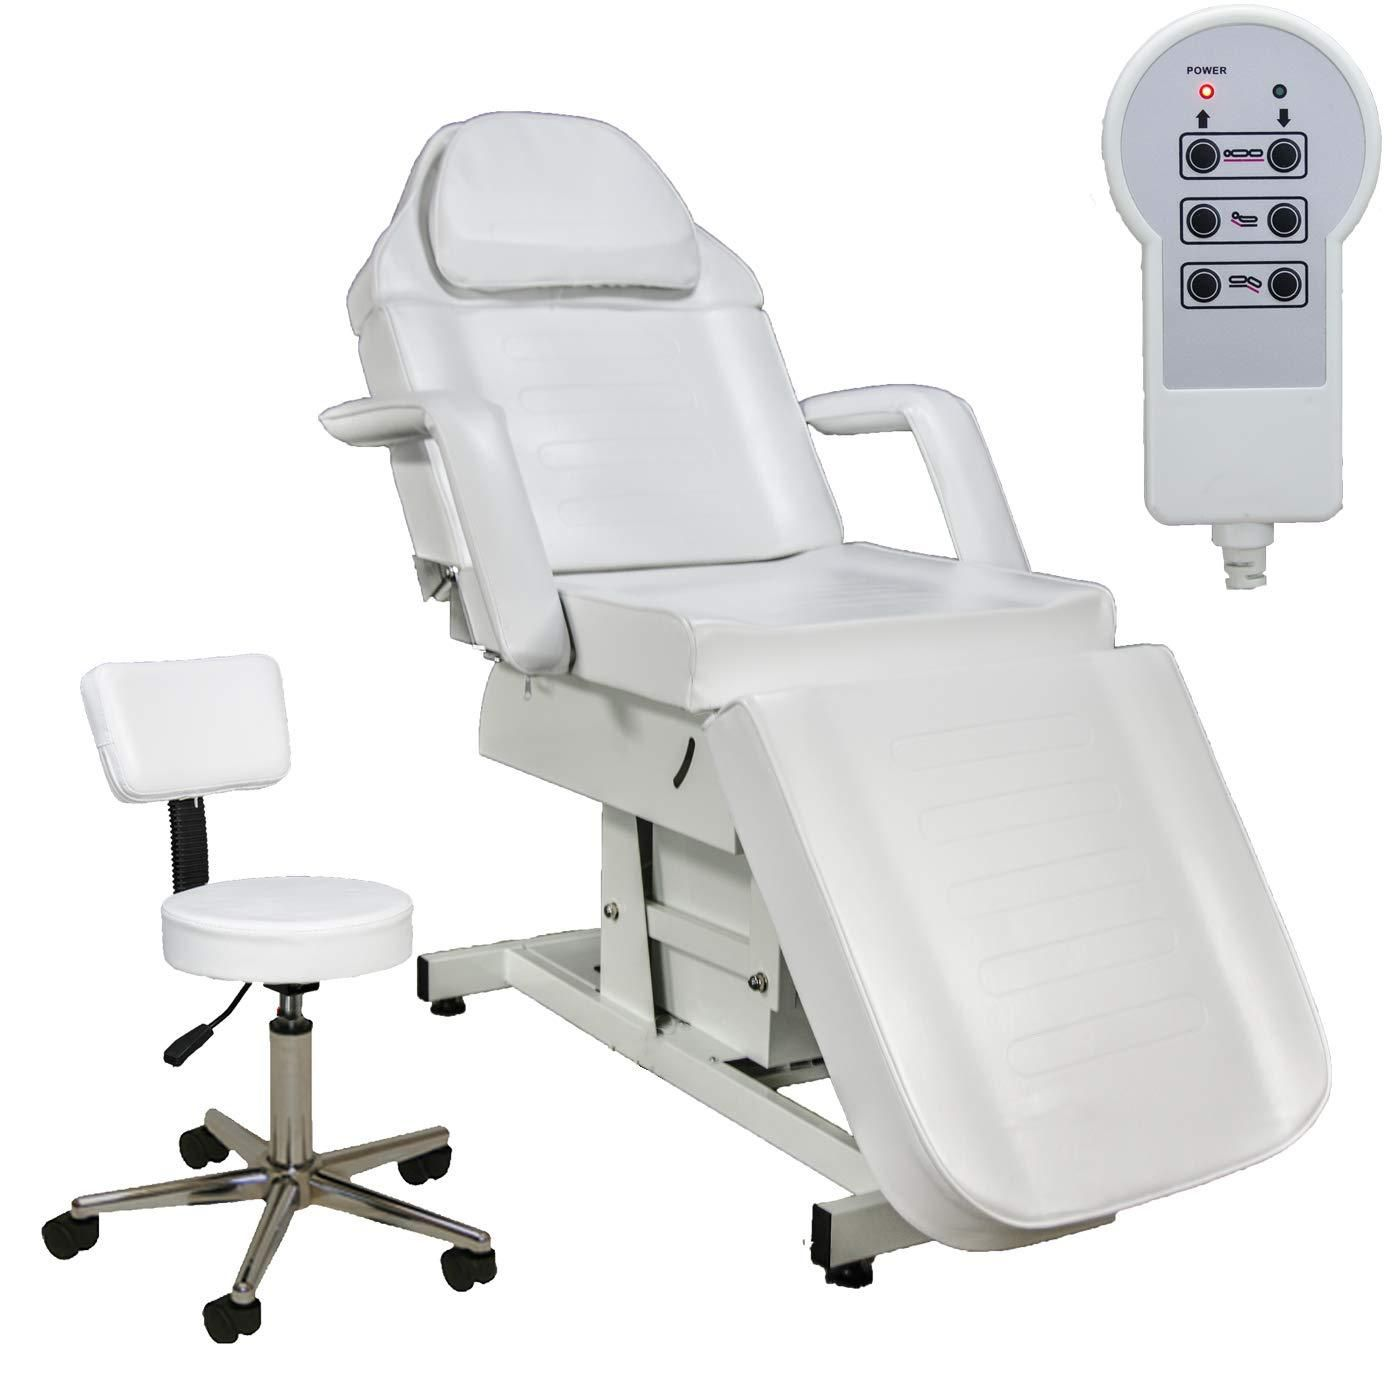 Buy Lcl Beauty Fully Electric Adjustable Facial Bed Massage Table White At Diane Beauty Supply For Only 1 199 76 In 2020 Massage Table Salon Equipment Adjustable Table